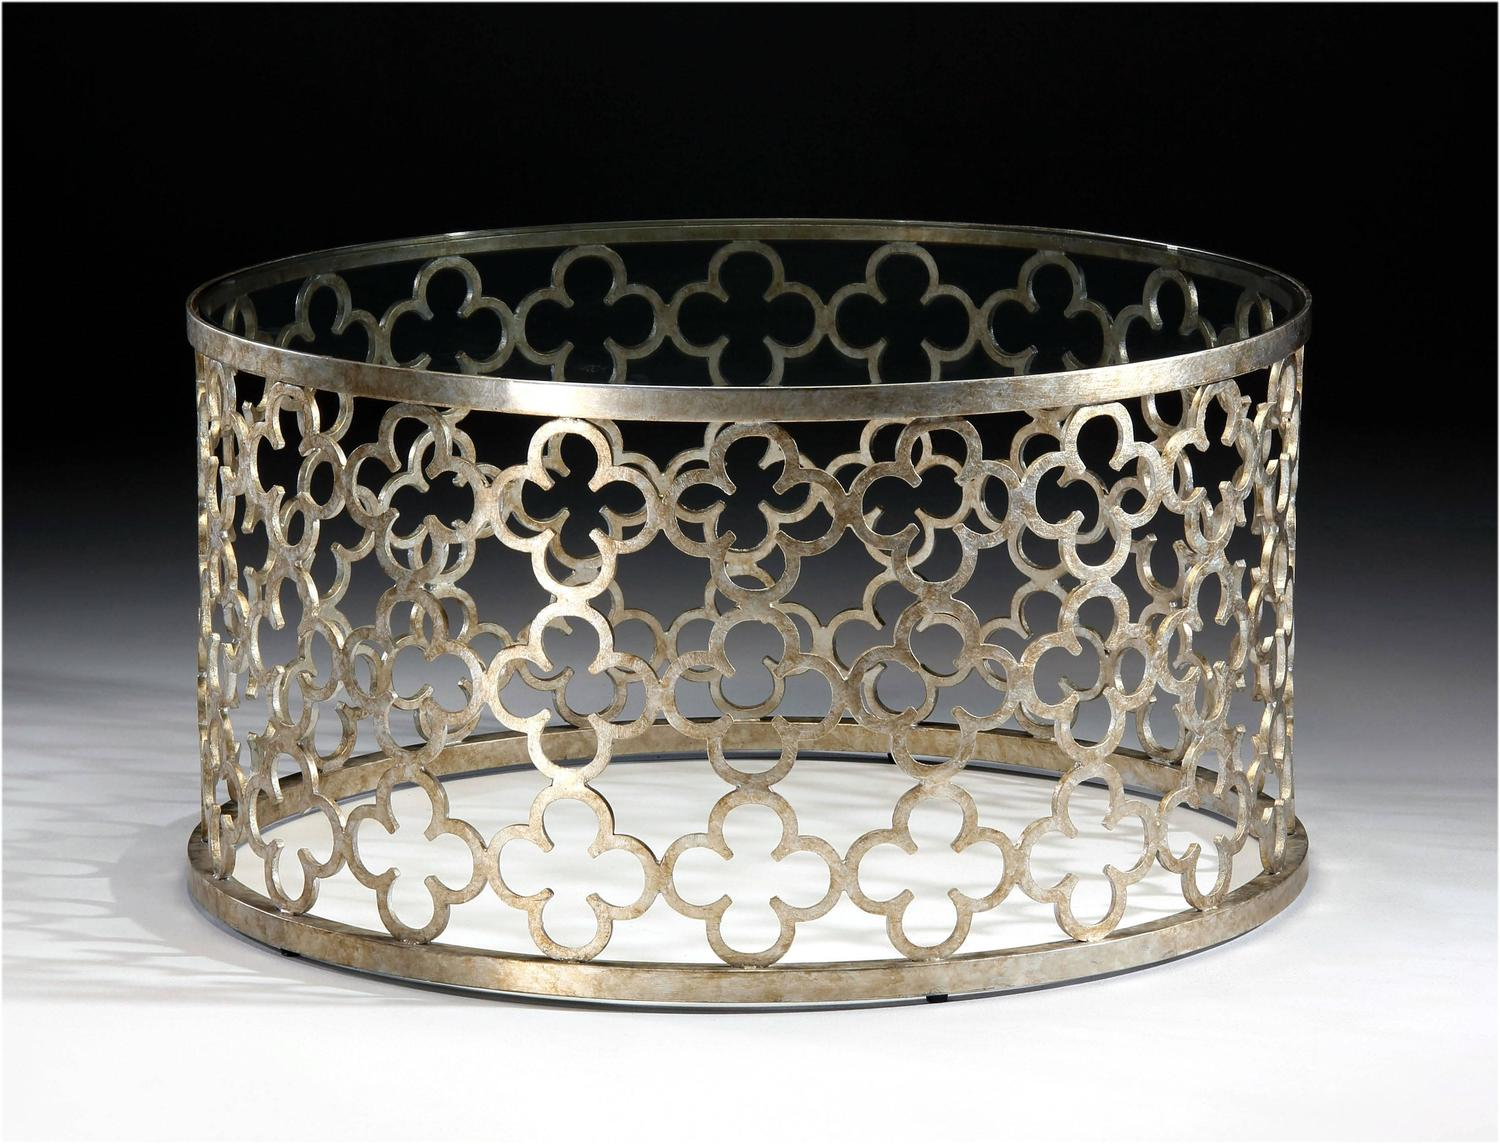 Large Round Italian Silver And Gilt Wrought Iron Coffee Table For Sale At 1stdibs